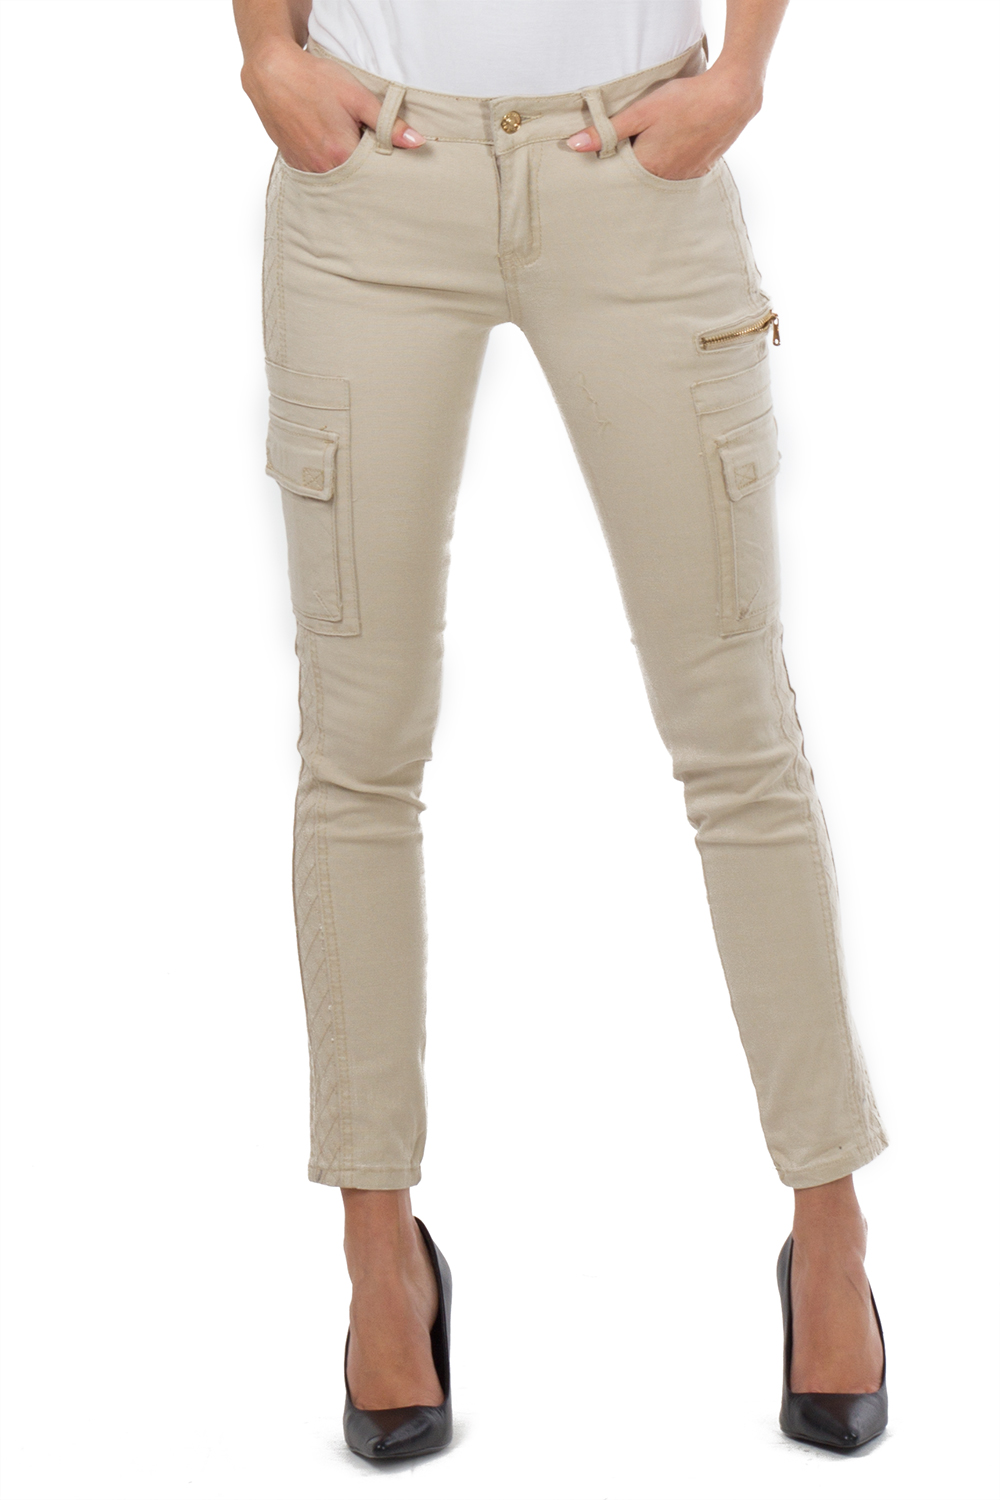 Wonderful A Contemporary Fit, Low Rise, Straight Leg Pant Features An Adjustable Drawstring With An Allaround Elastic Waistband And